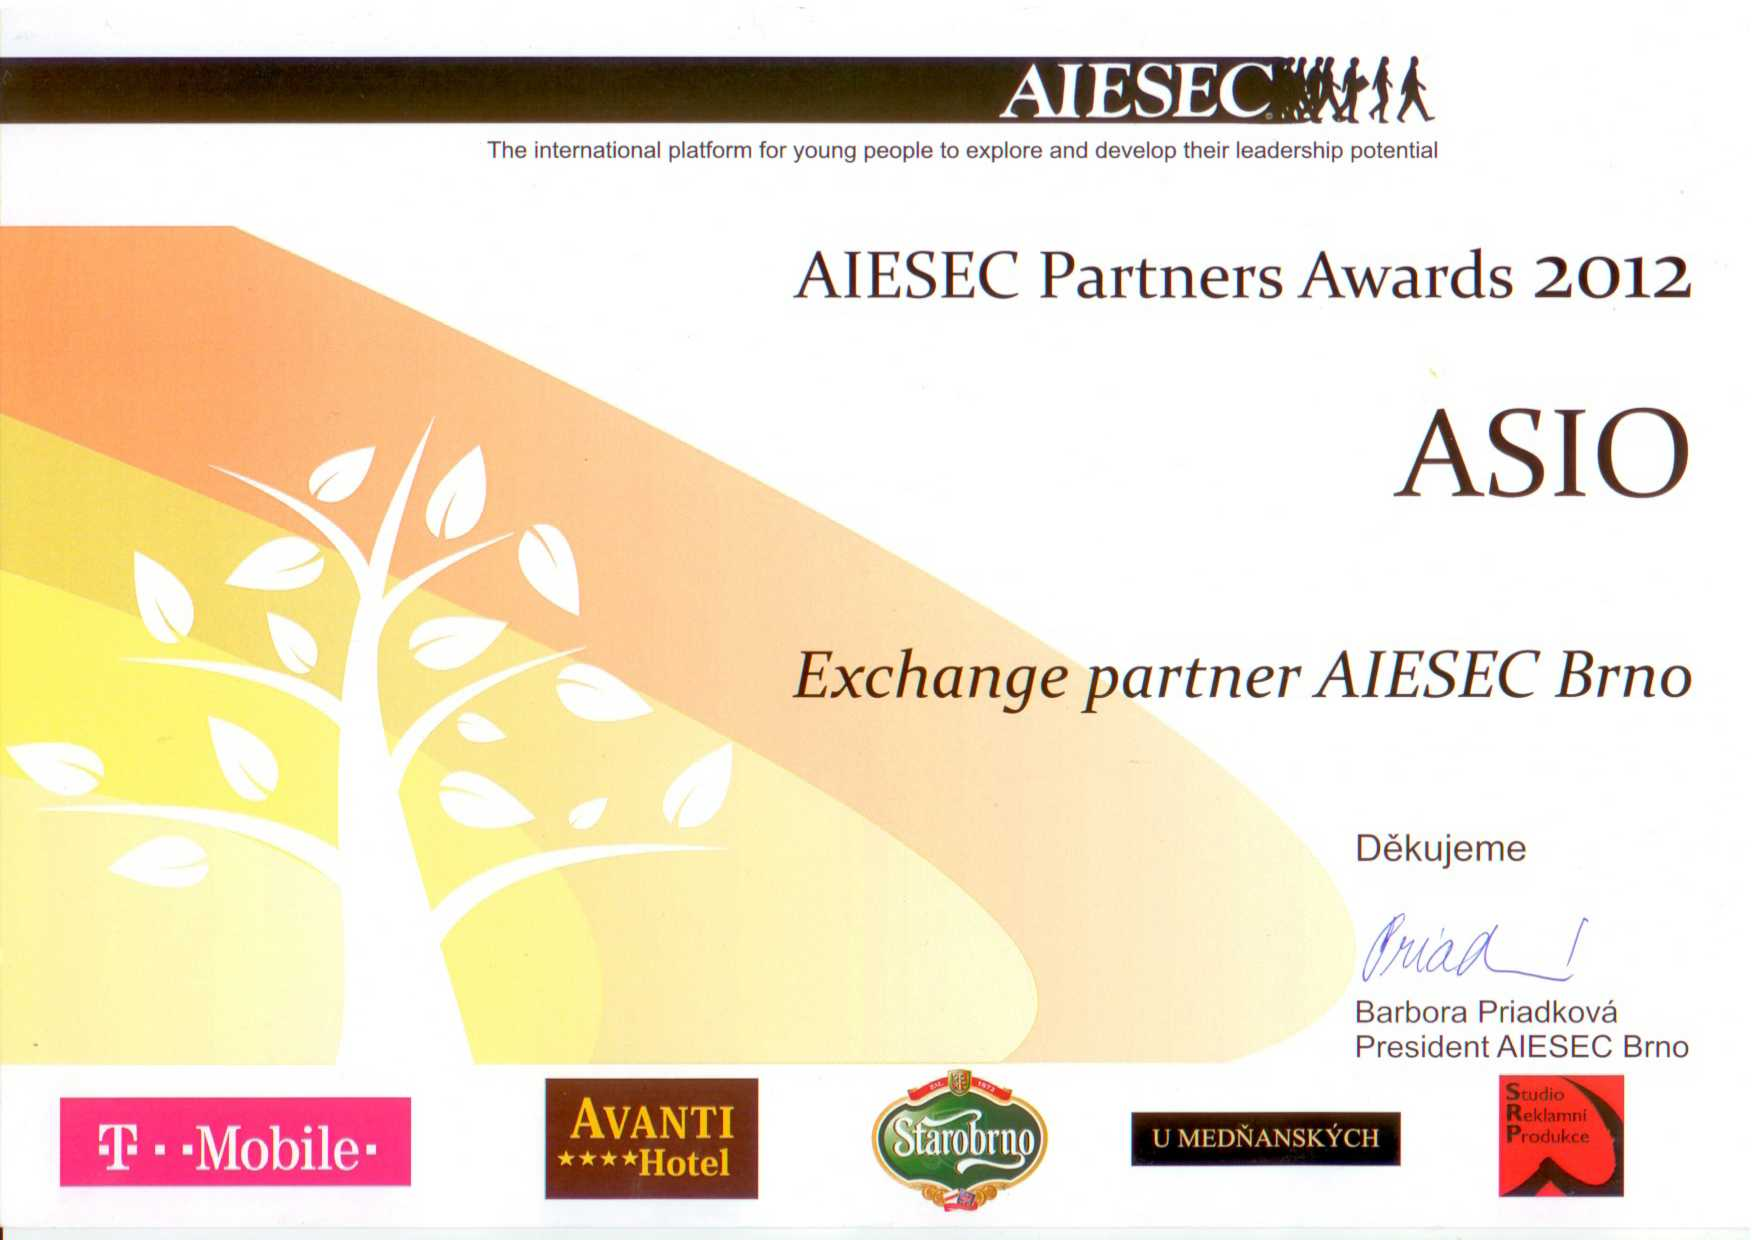 AIESEC PARTNERS AWARDS 2012